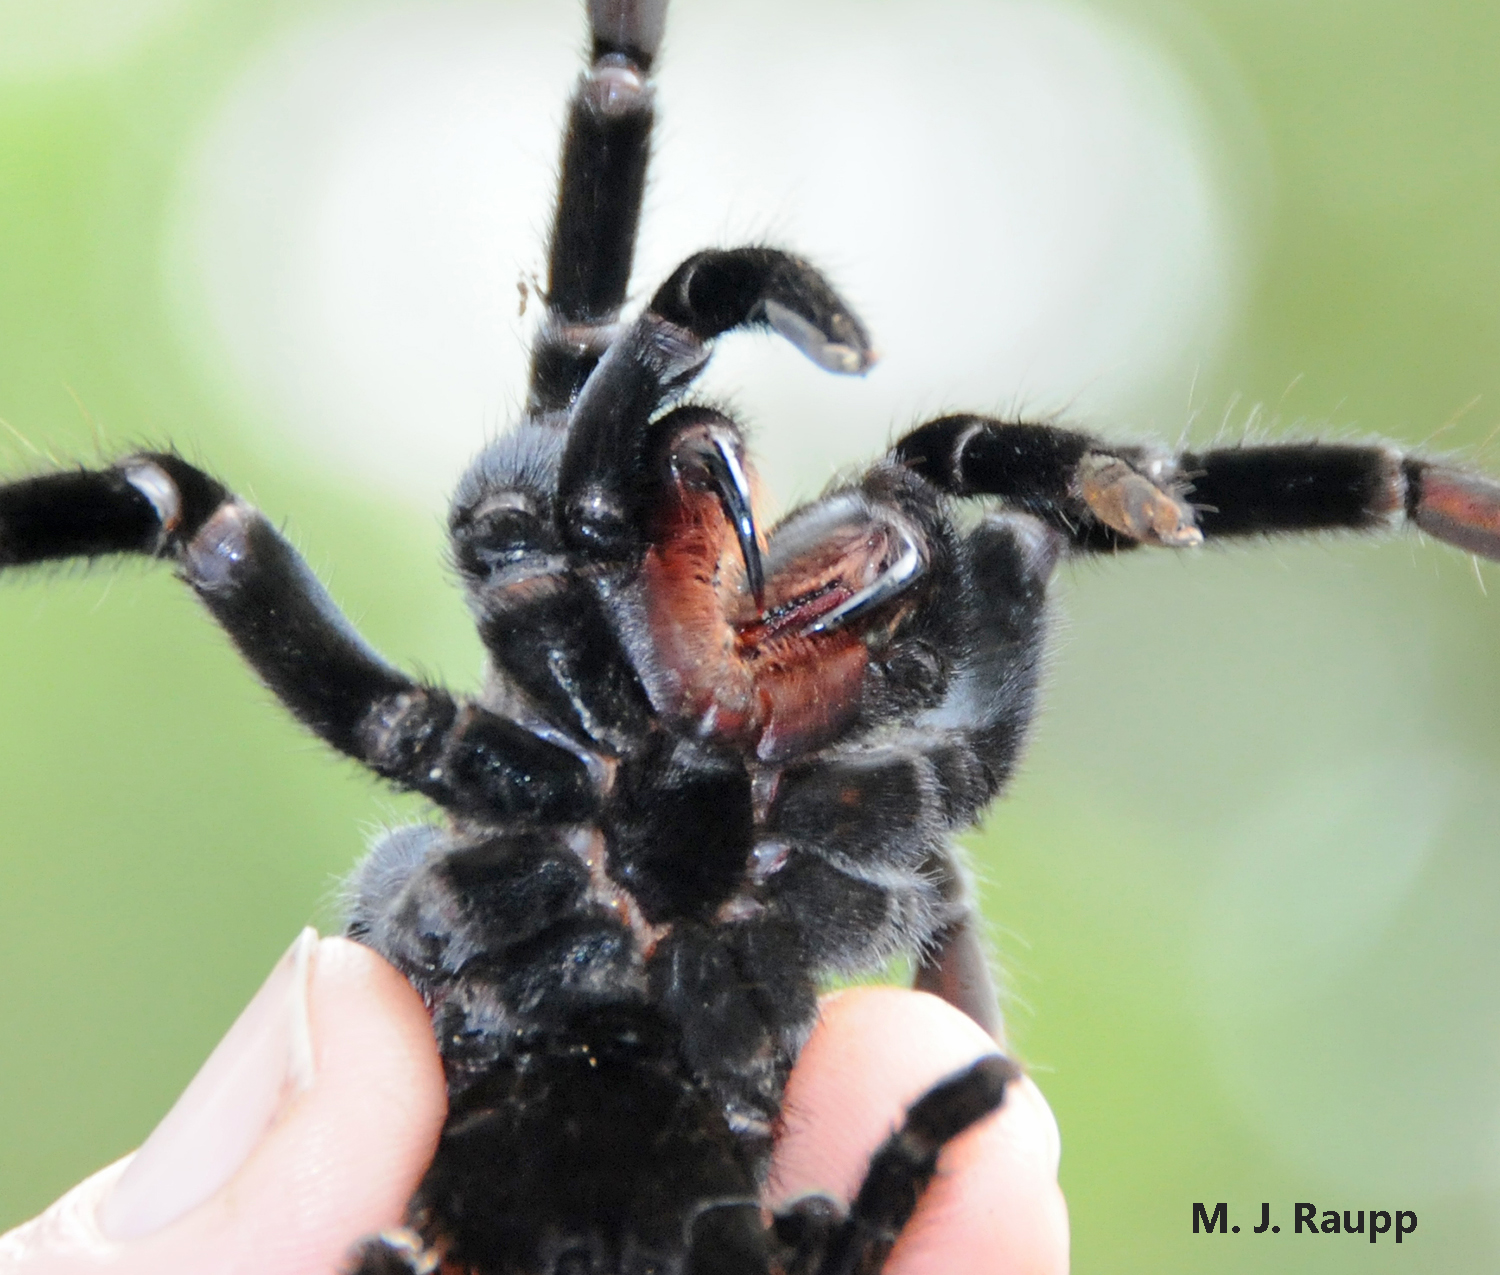 Large powerful fangs used to capture prey are the business end of a tarantula.